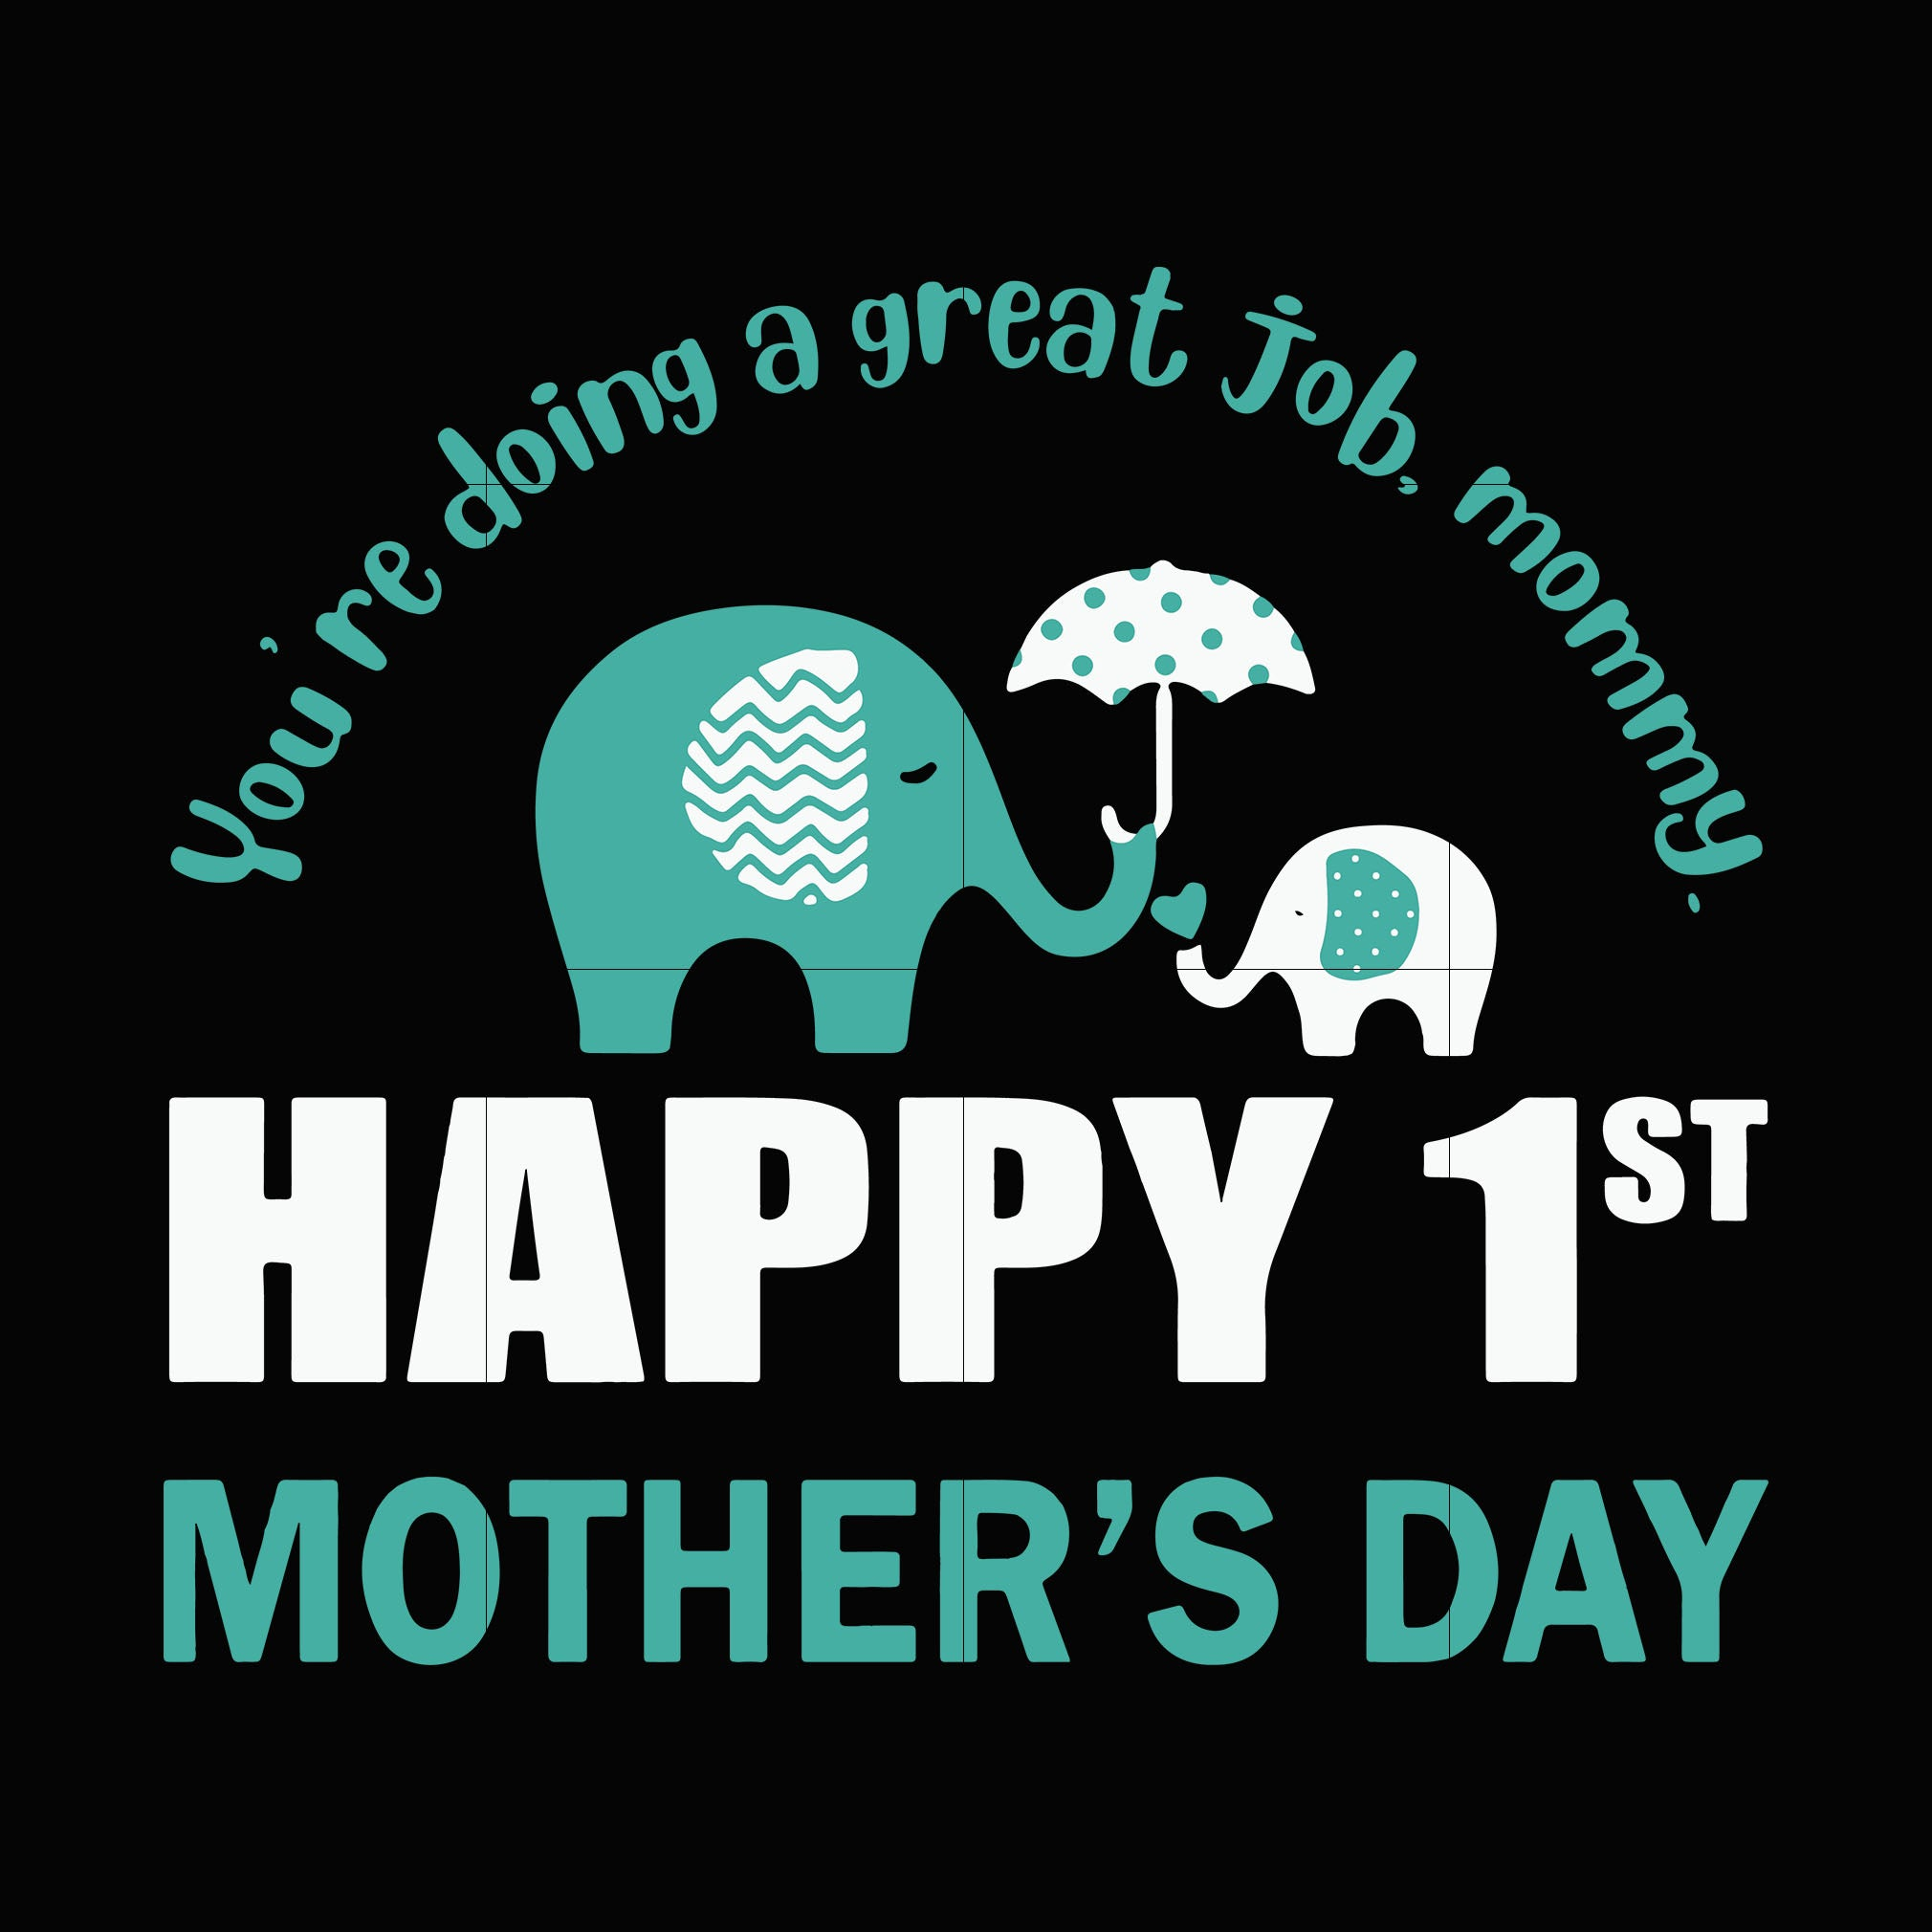 Free Enjoy today, you deserve it! You Re Doing A Great Job Mommy Happy 1 St Mother S Day Svg Dxf Eps Png Svgtrending SVG, PNG, EPS, DXF File